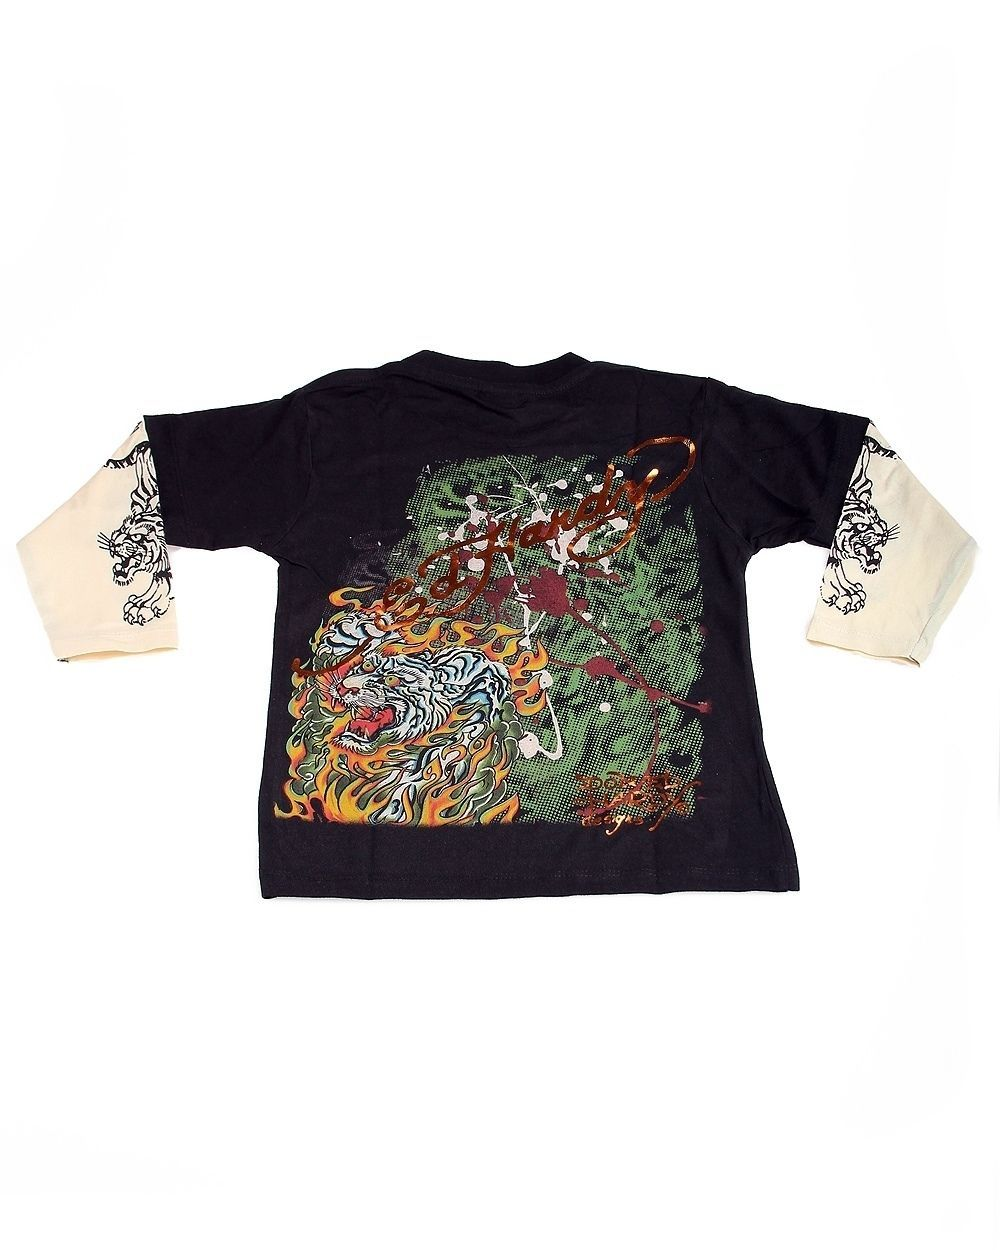 Image 1 of Popular Ed Hardy Boys Black Tee Shirt with White Tiger Motif, Double Long Sleeve